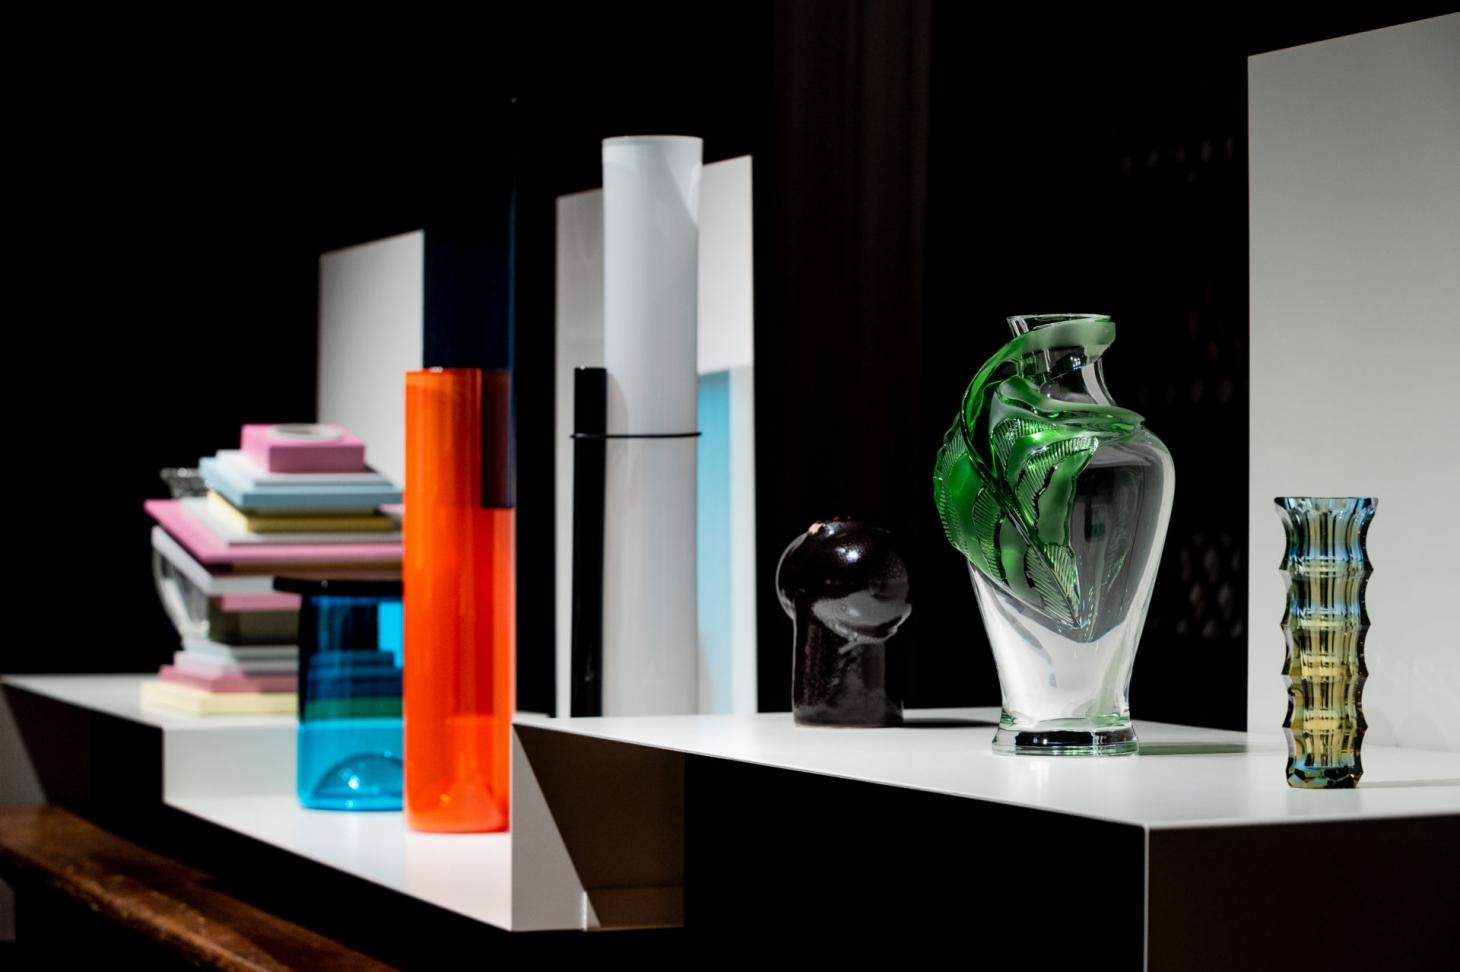 Installation view of Centuries of Shape at Homo Faber